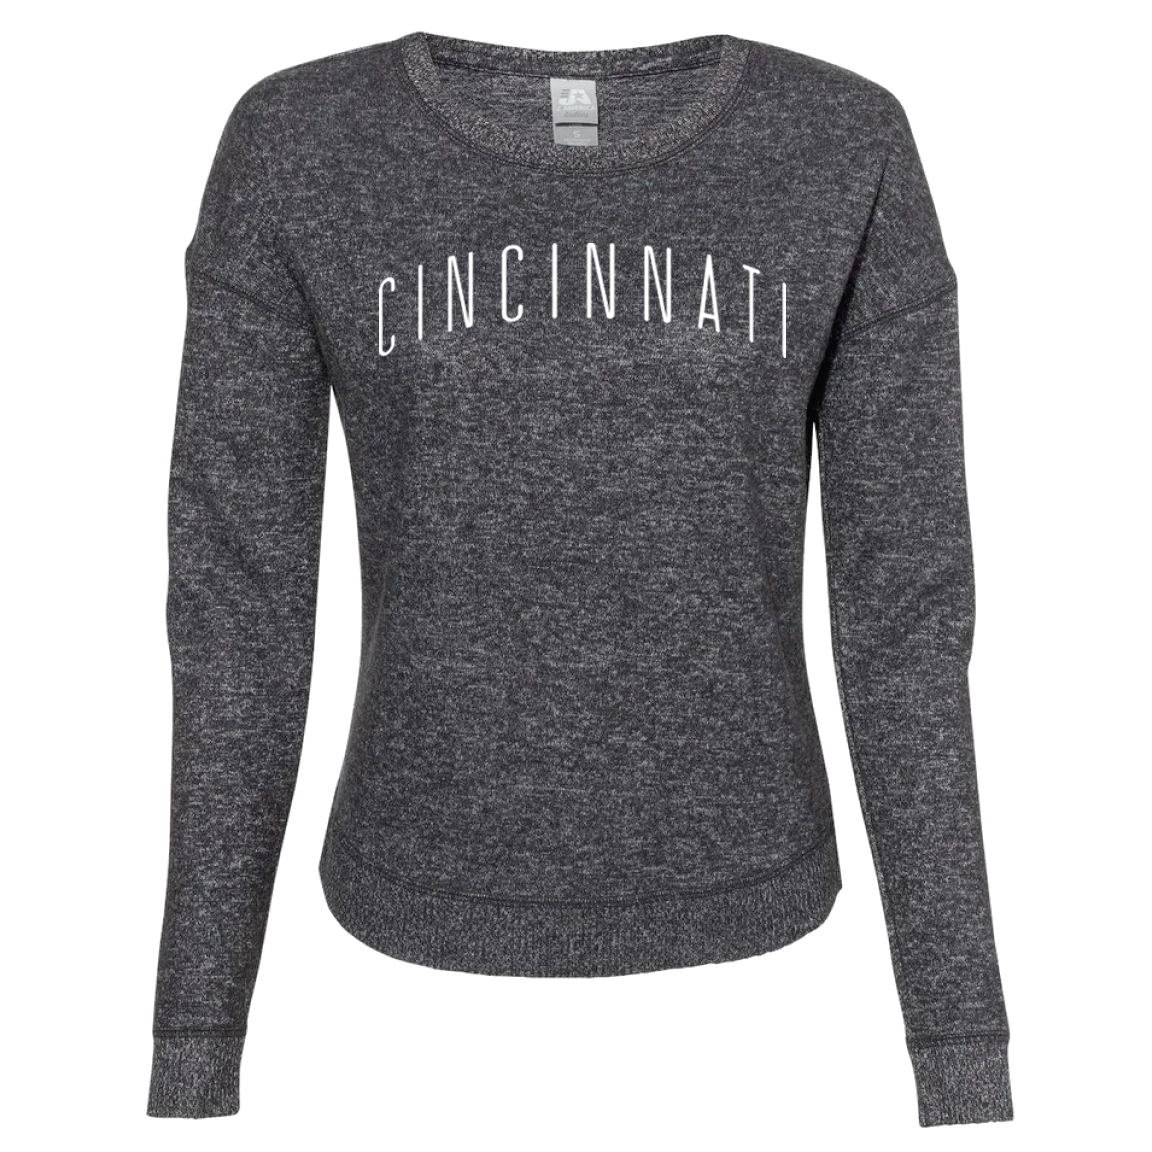 Cincinnati Ladies Cozy Crewneck Fleece - Cincy Shirts